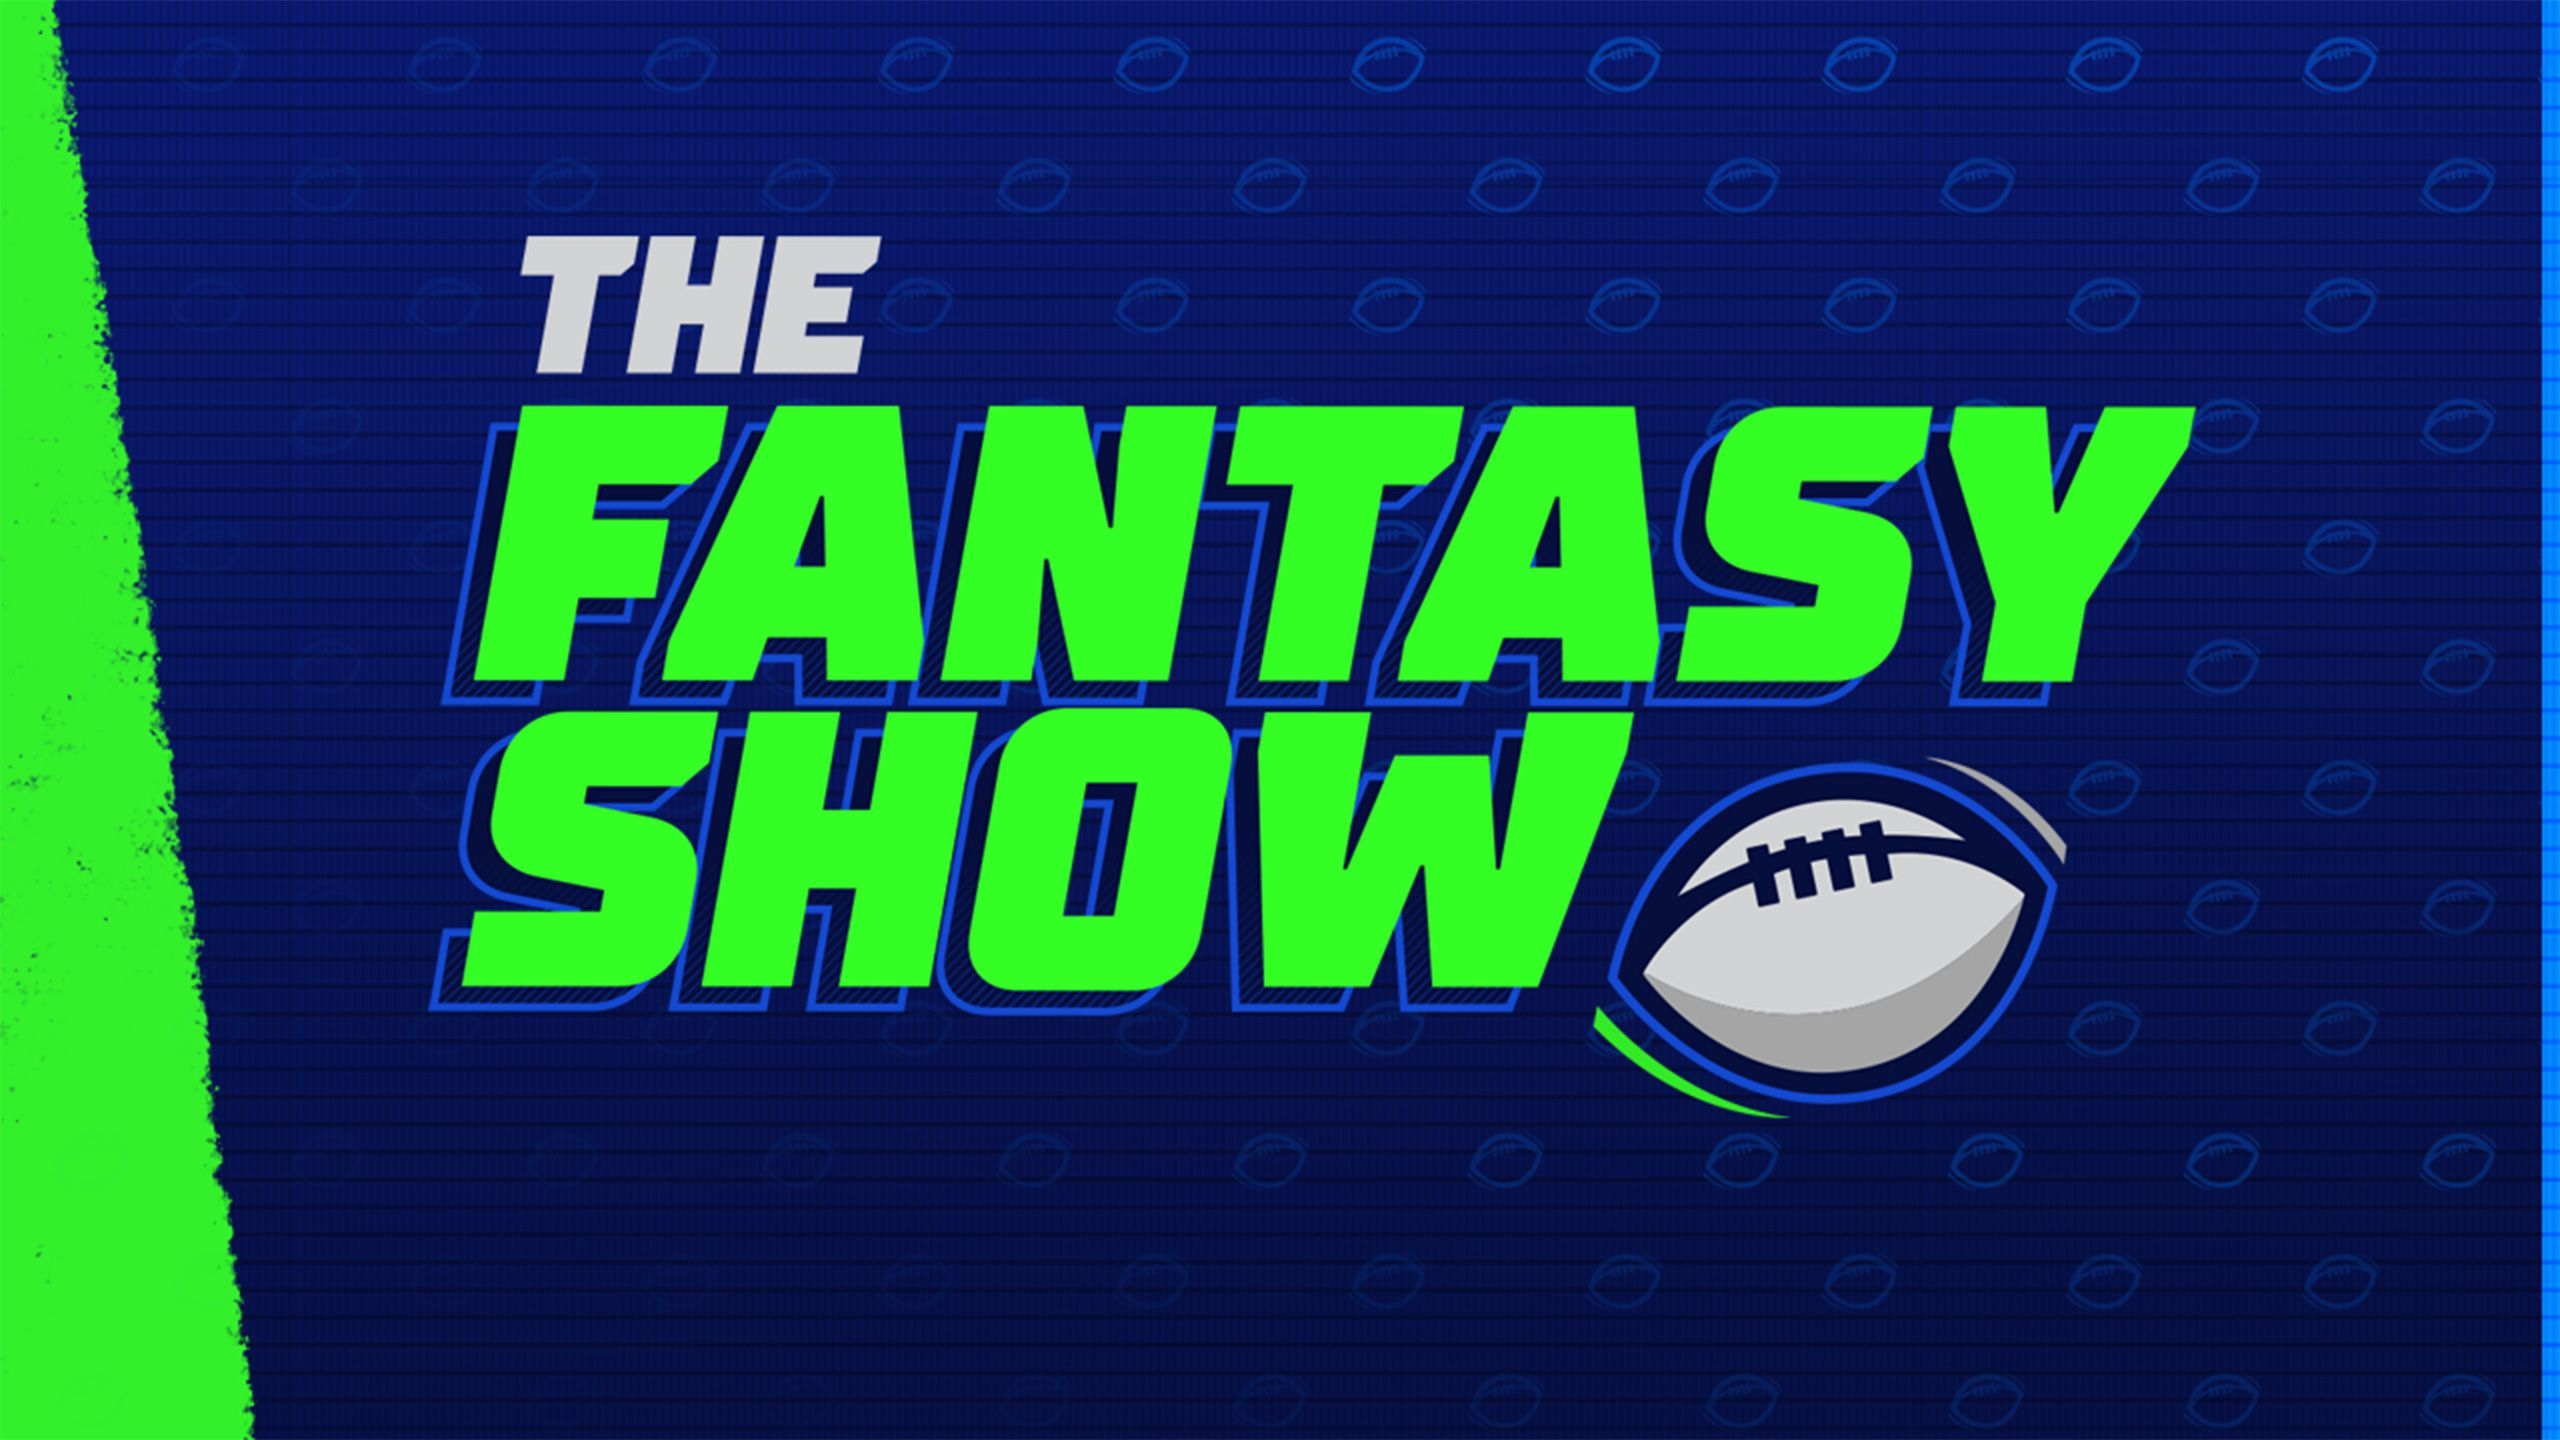 Mon, 10/16 - The Fantasy Show presented by E*Trade